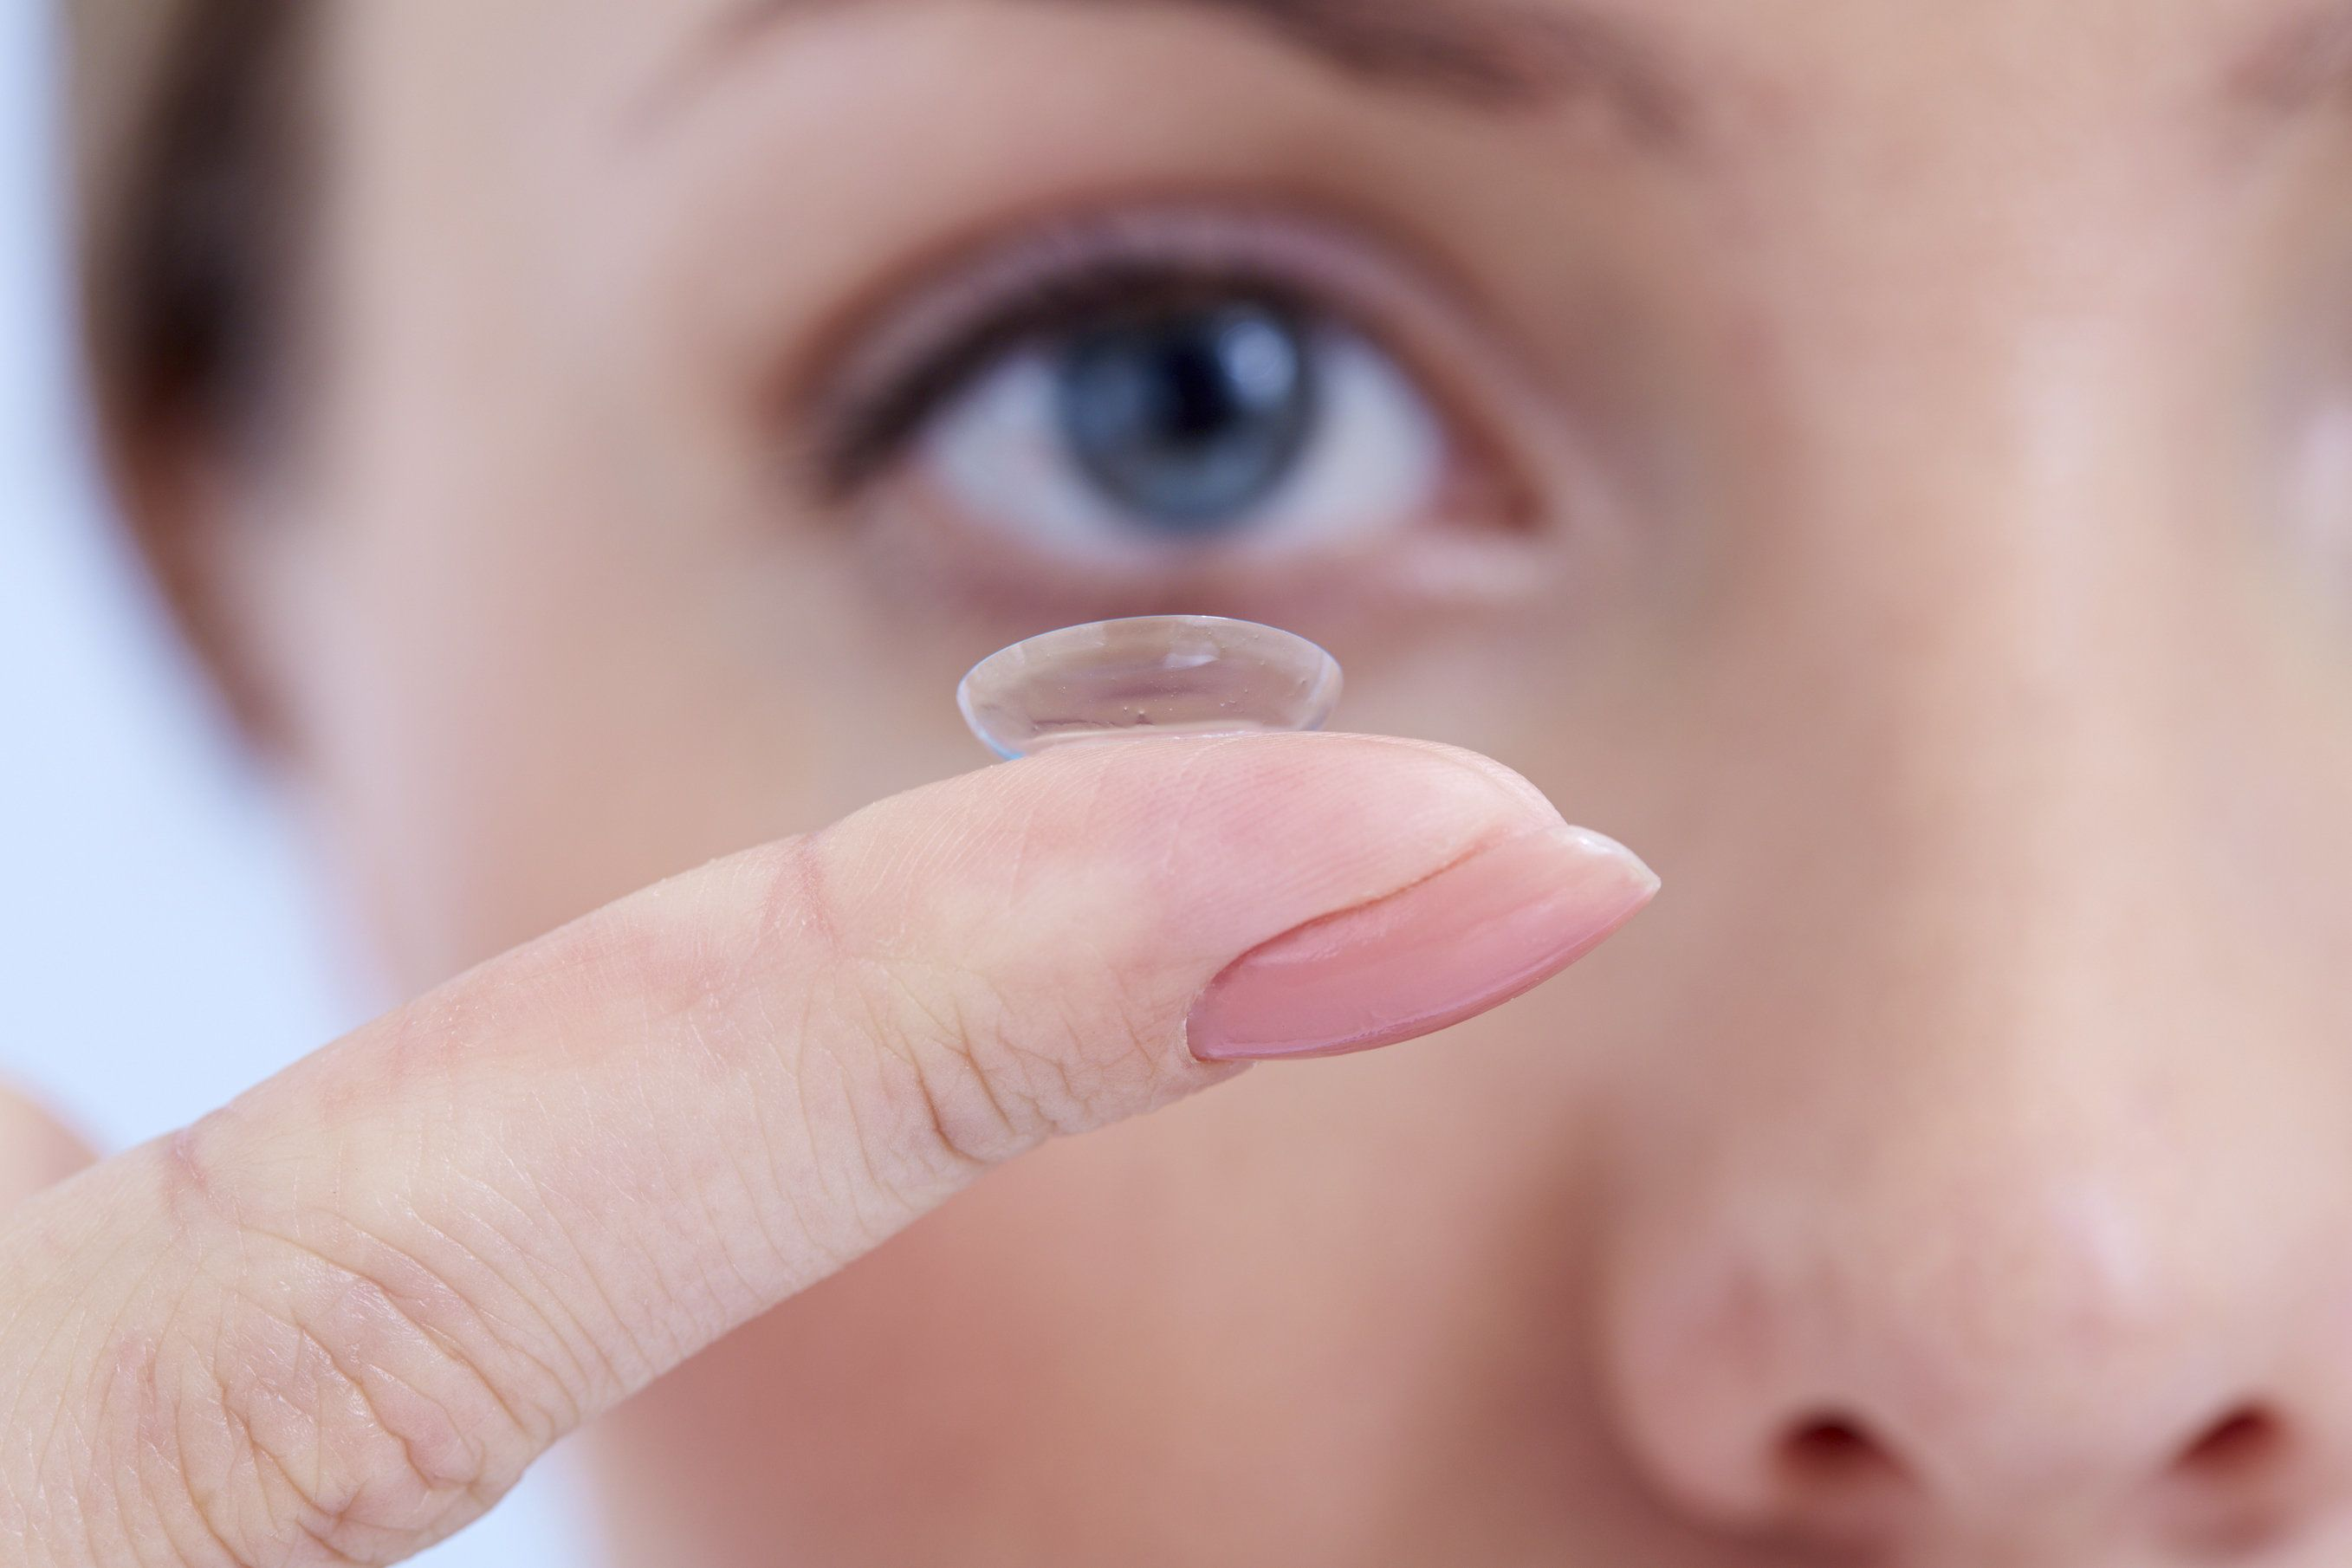 Single contact lens held in front of woman's right eye